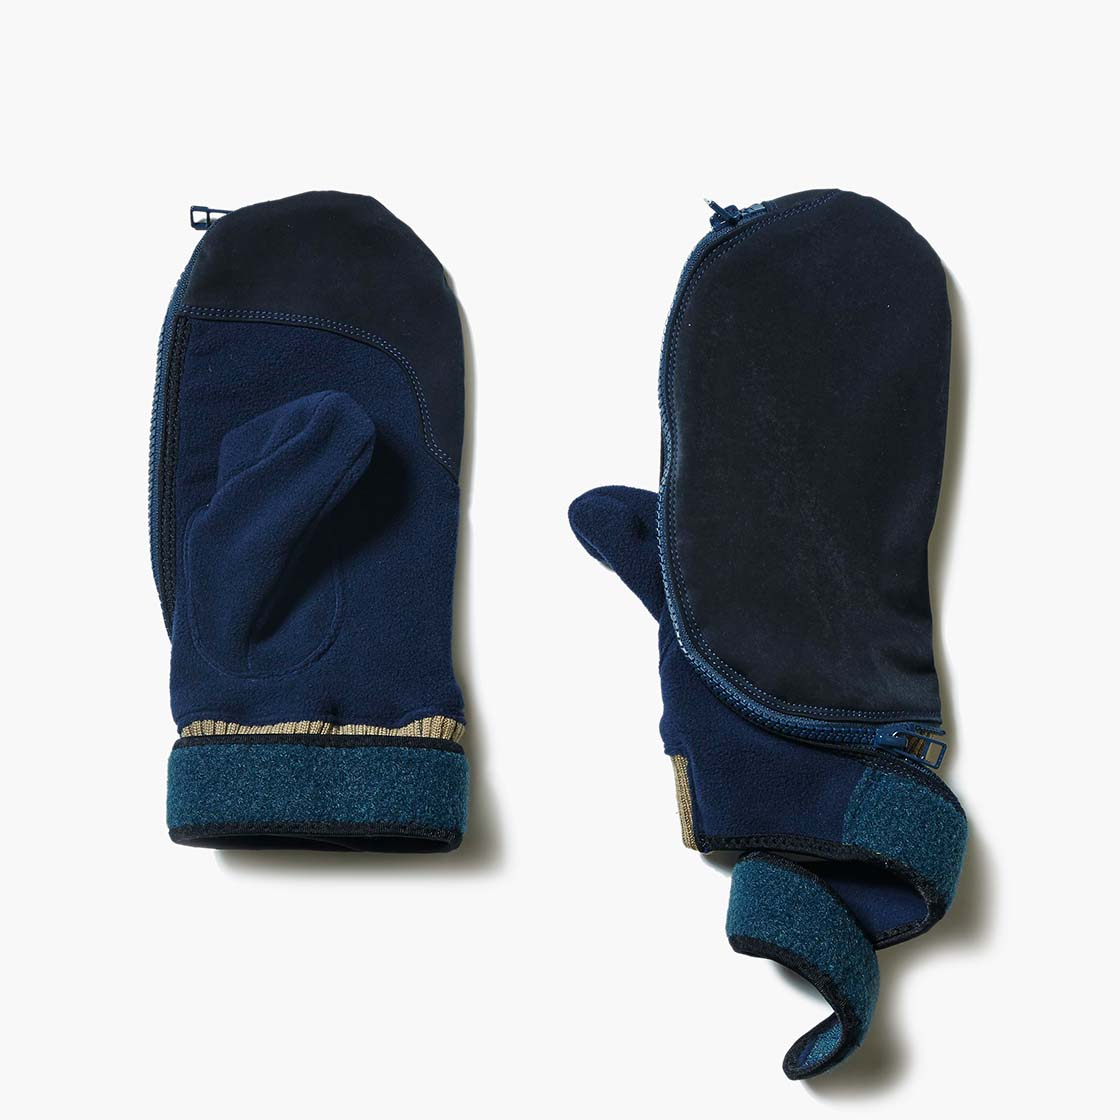 High Density Smooth Mitten Glove